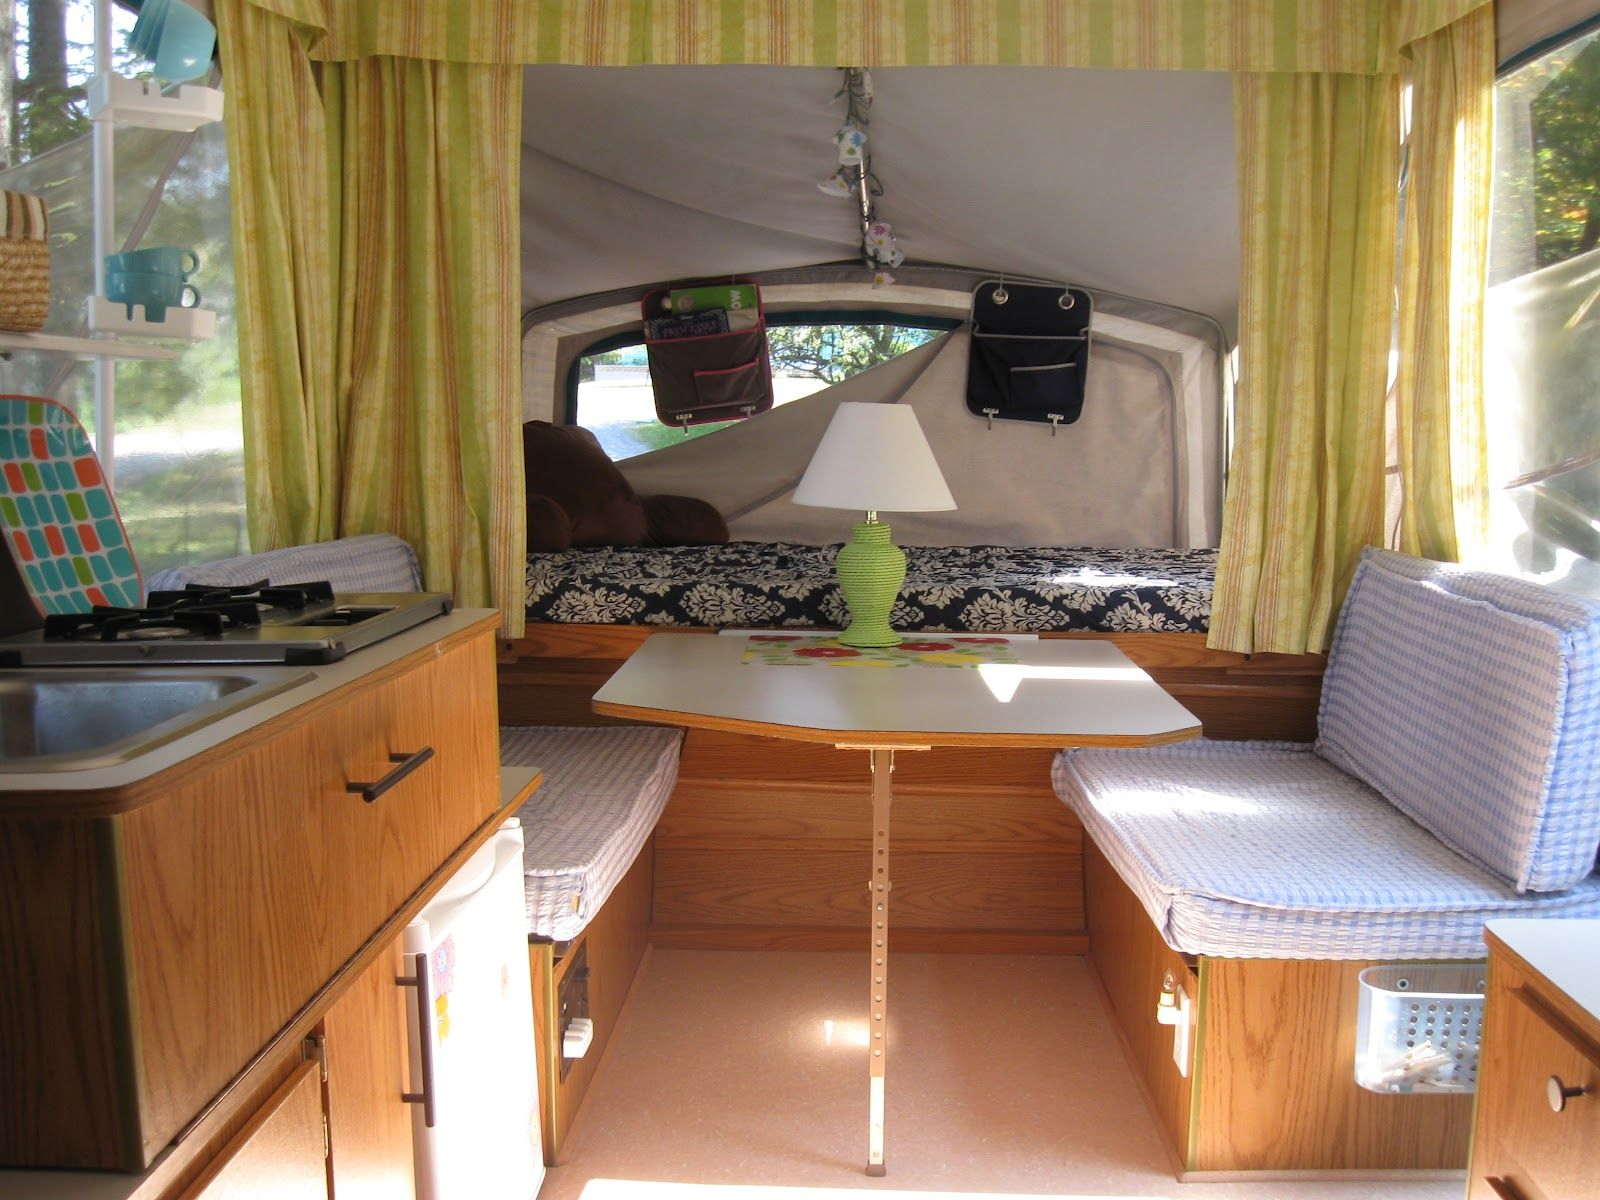 decorating a pop up camper new curtains new slipcovers new cover